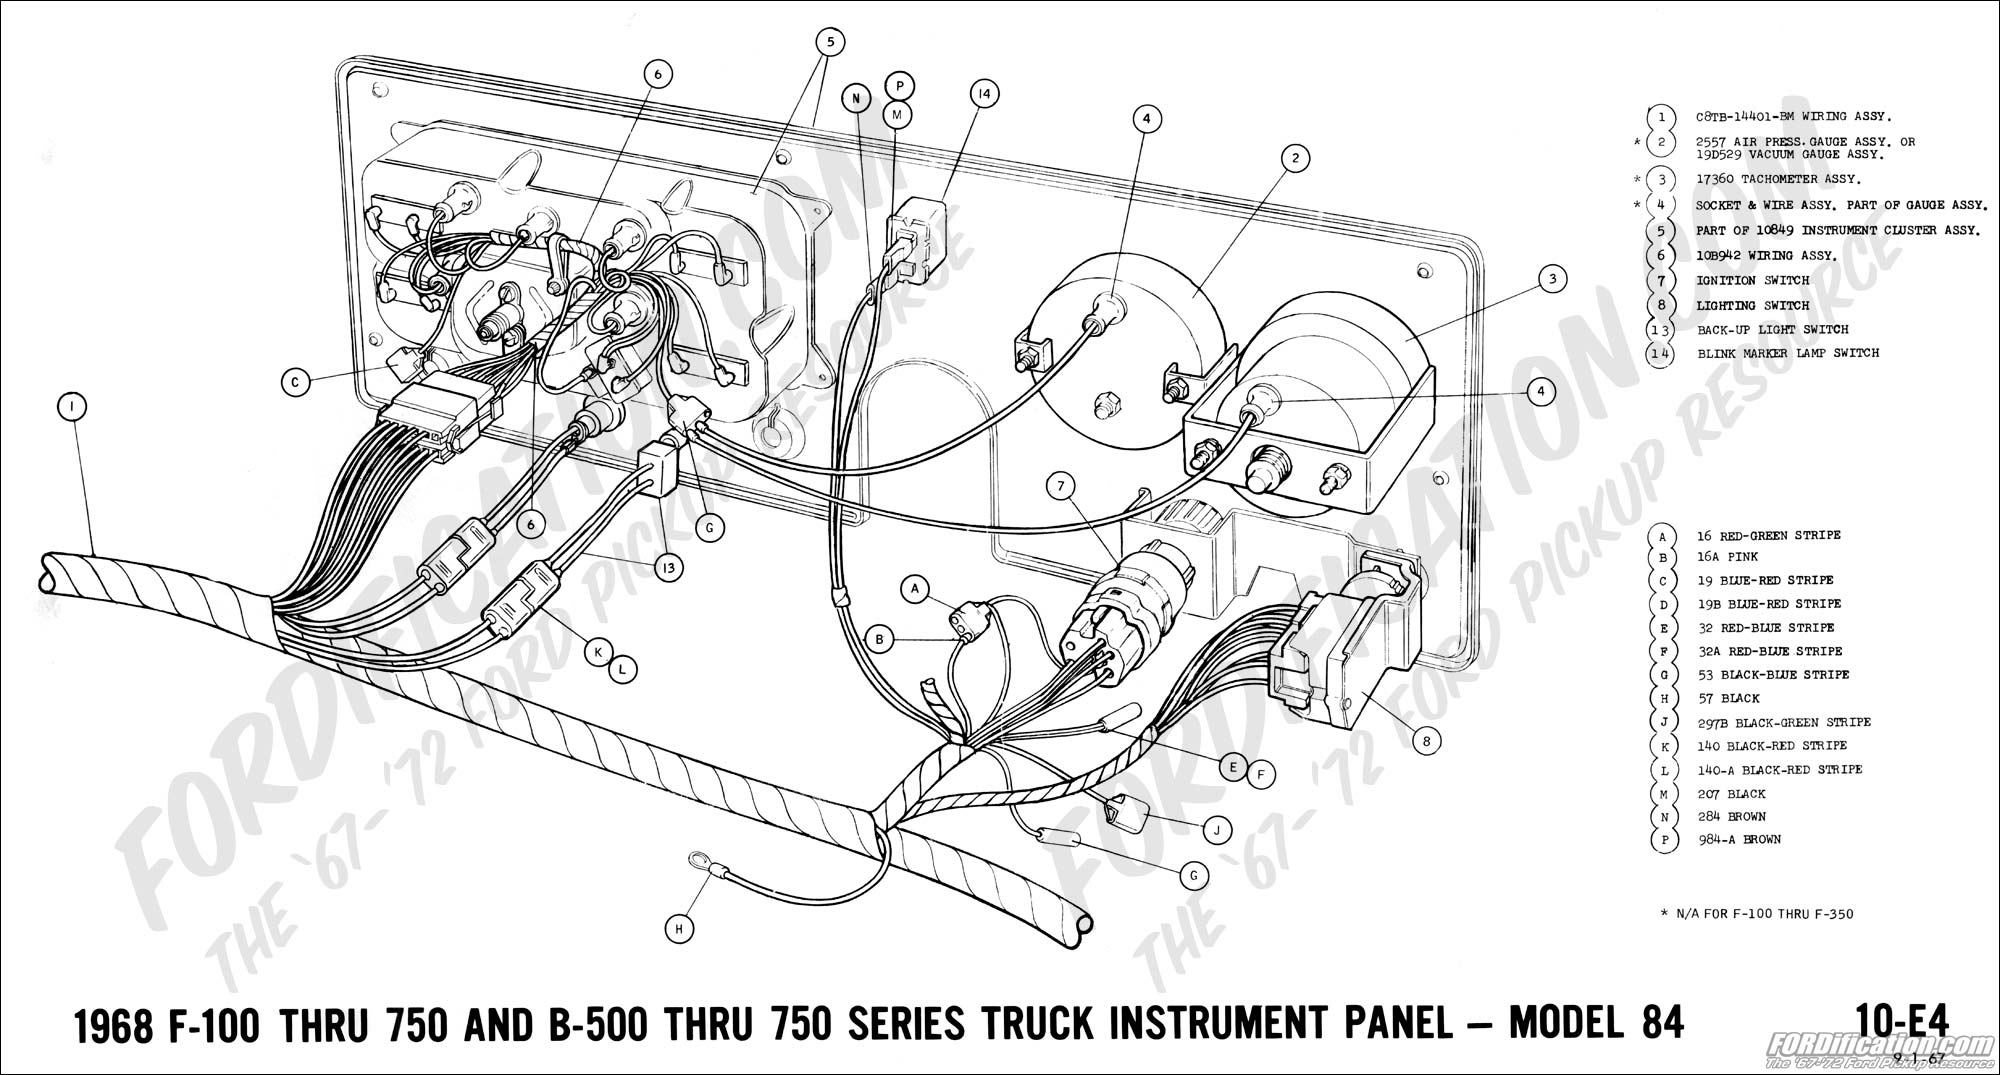 68 06 ford truck technical drawings and schematics section h wiring f750 wiring diagram at panicattacktreatment.co